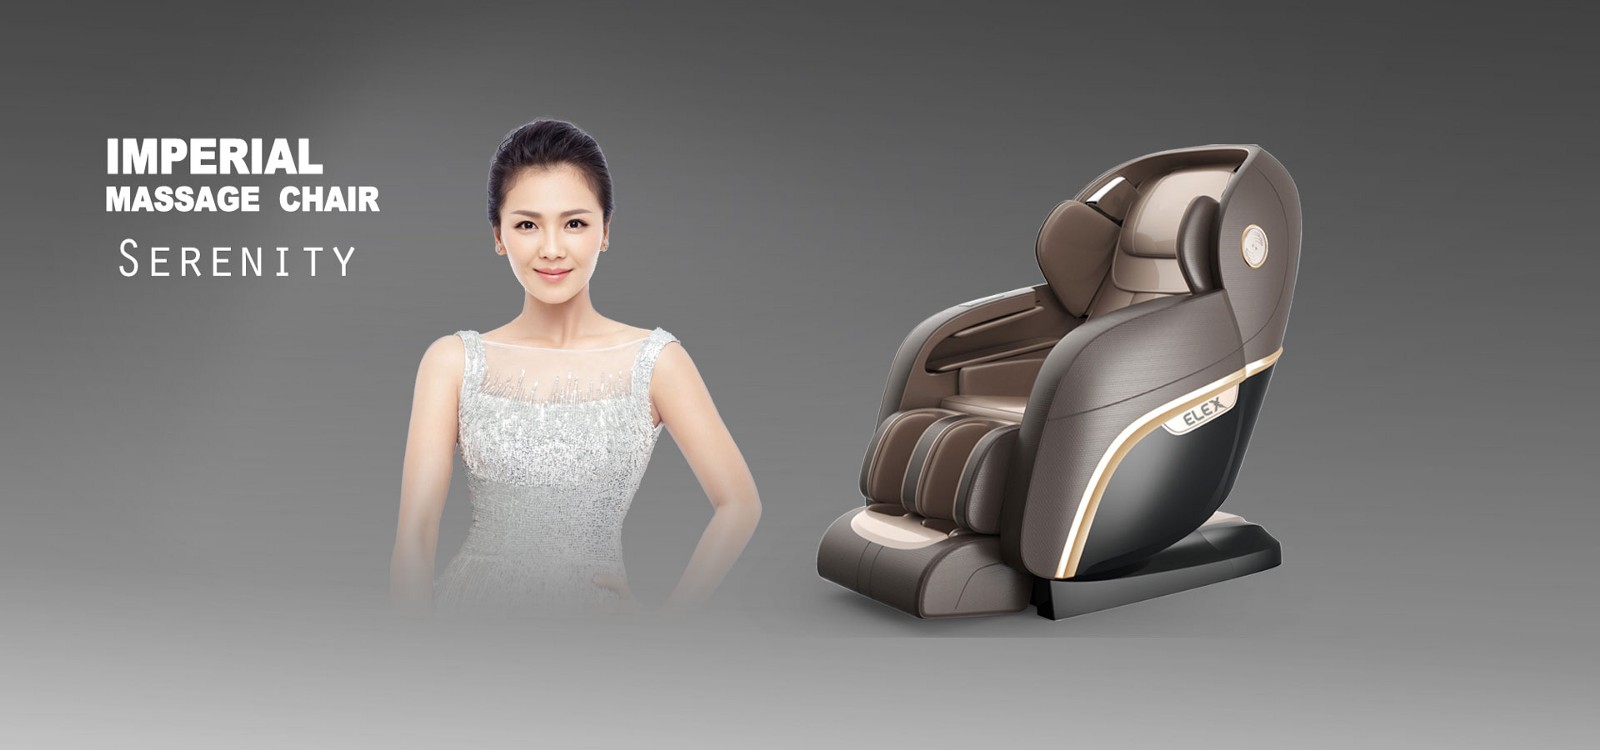 revitalize your mind and body with premium quality massage chairs